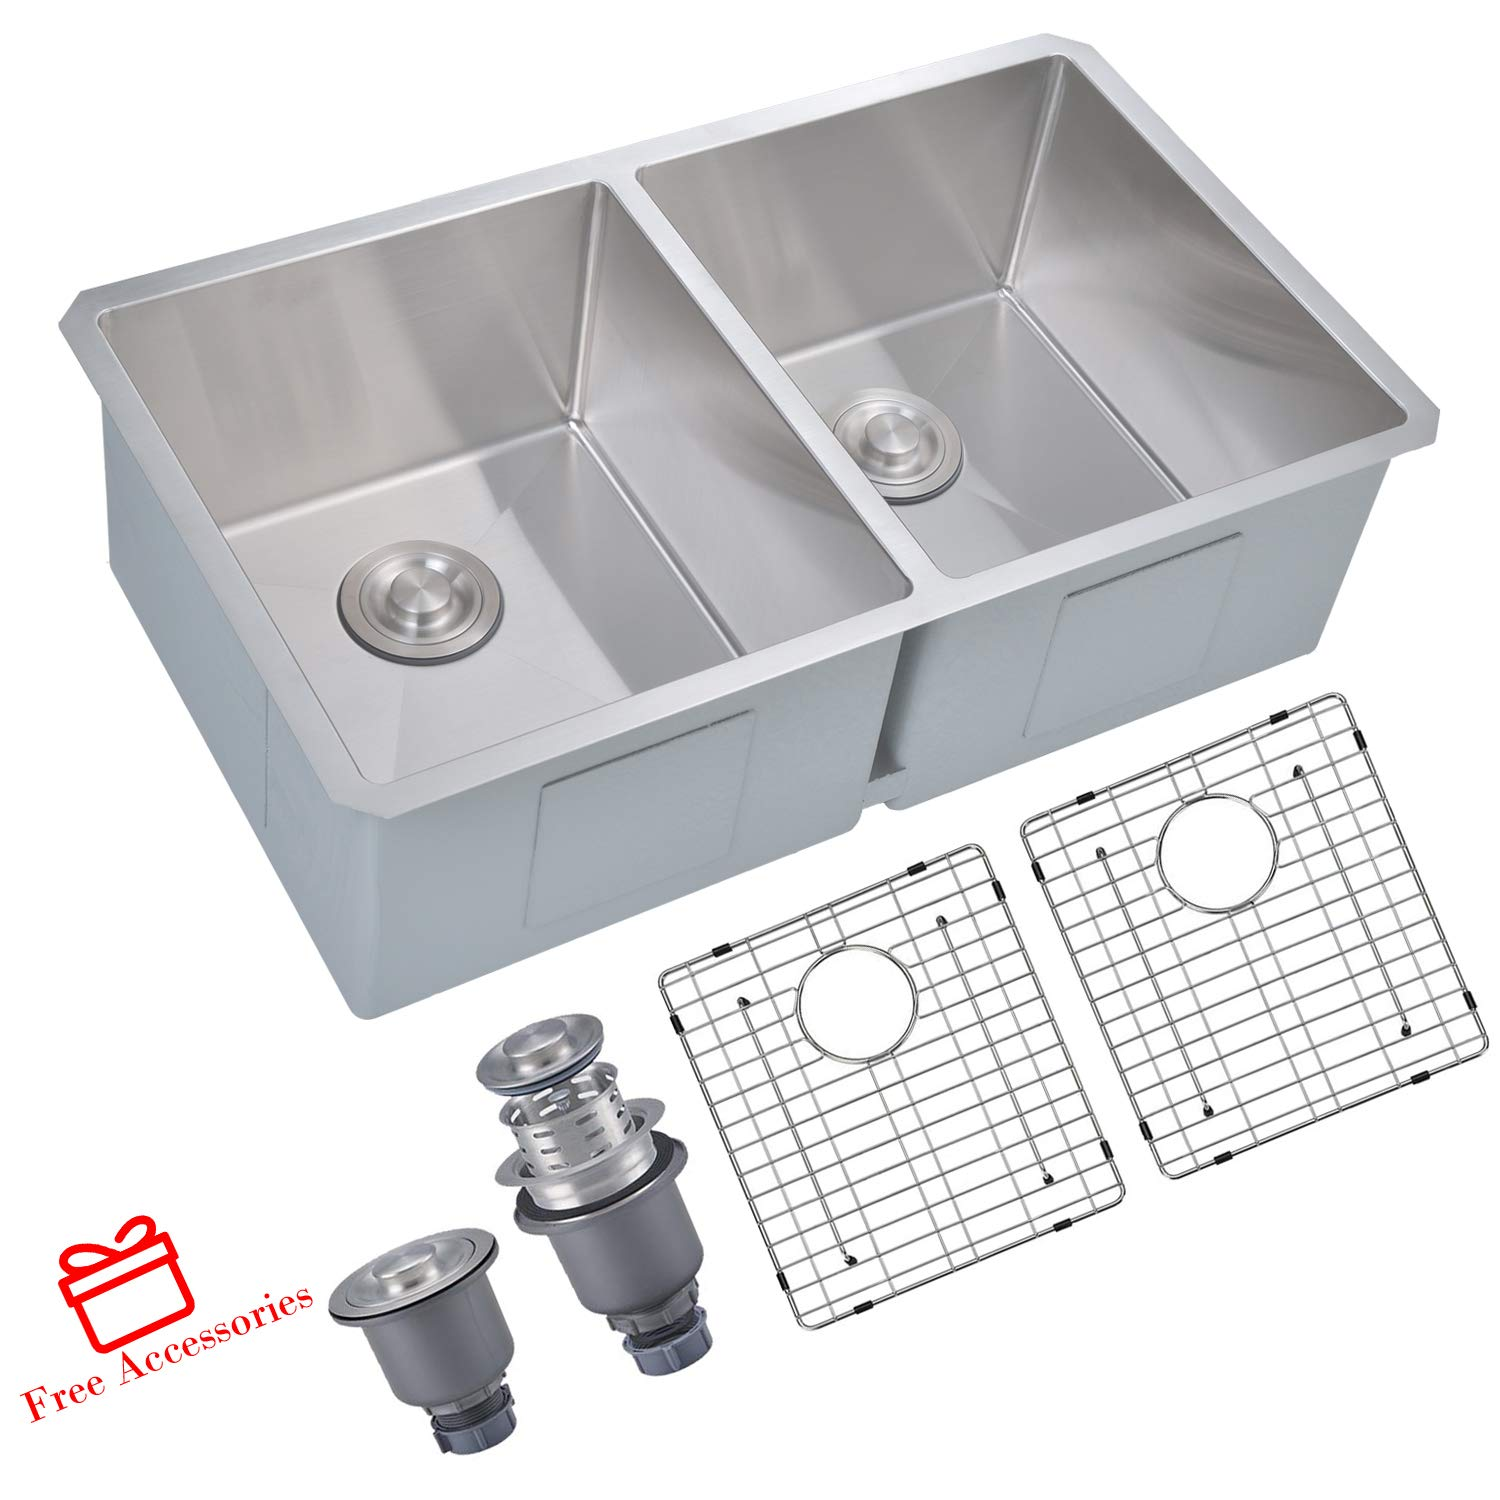 SINOGY 33''x19'' Inch 50/50 Double Bowls Undermount 16 Gauge Stainless Steel Kitchen Sink With 2 Drainers and Bottom Grid